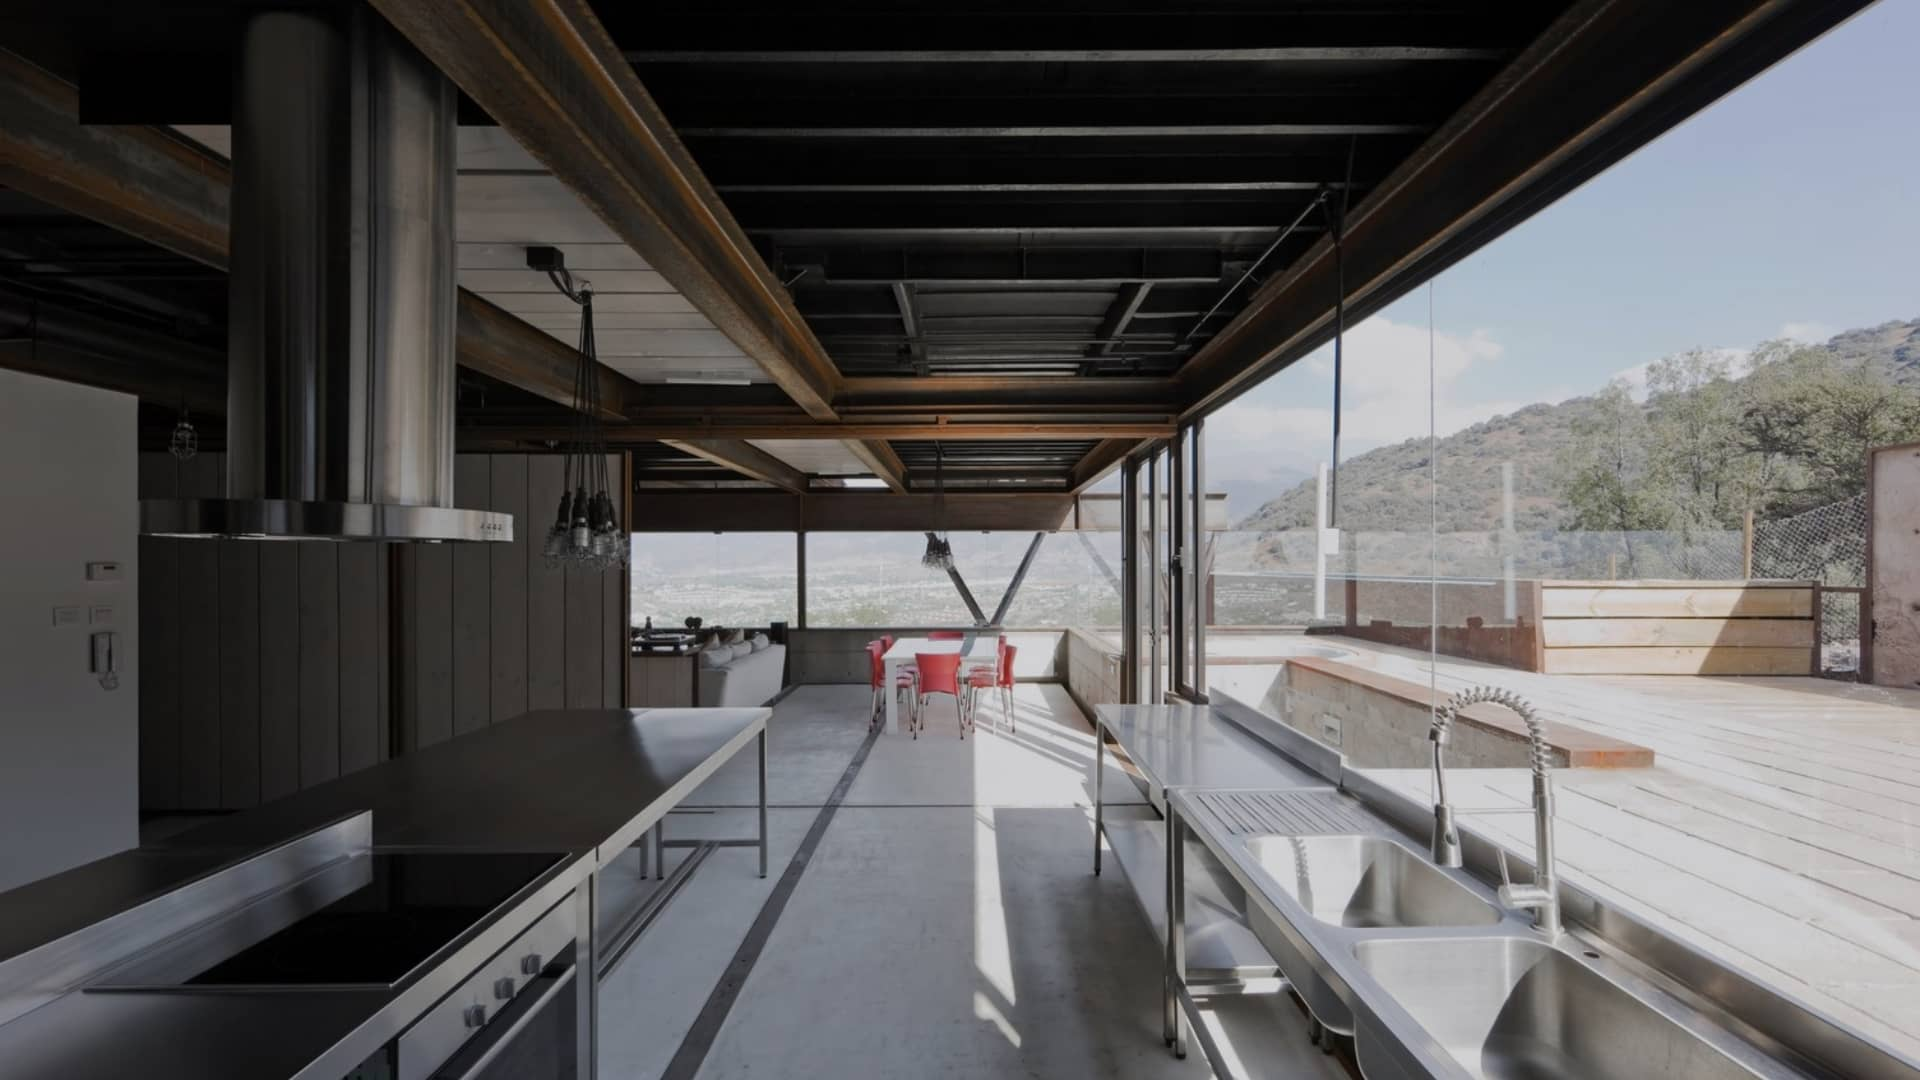 A modern kitchen build with shipping containers